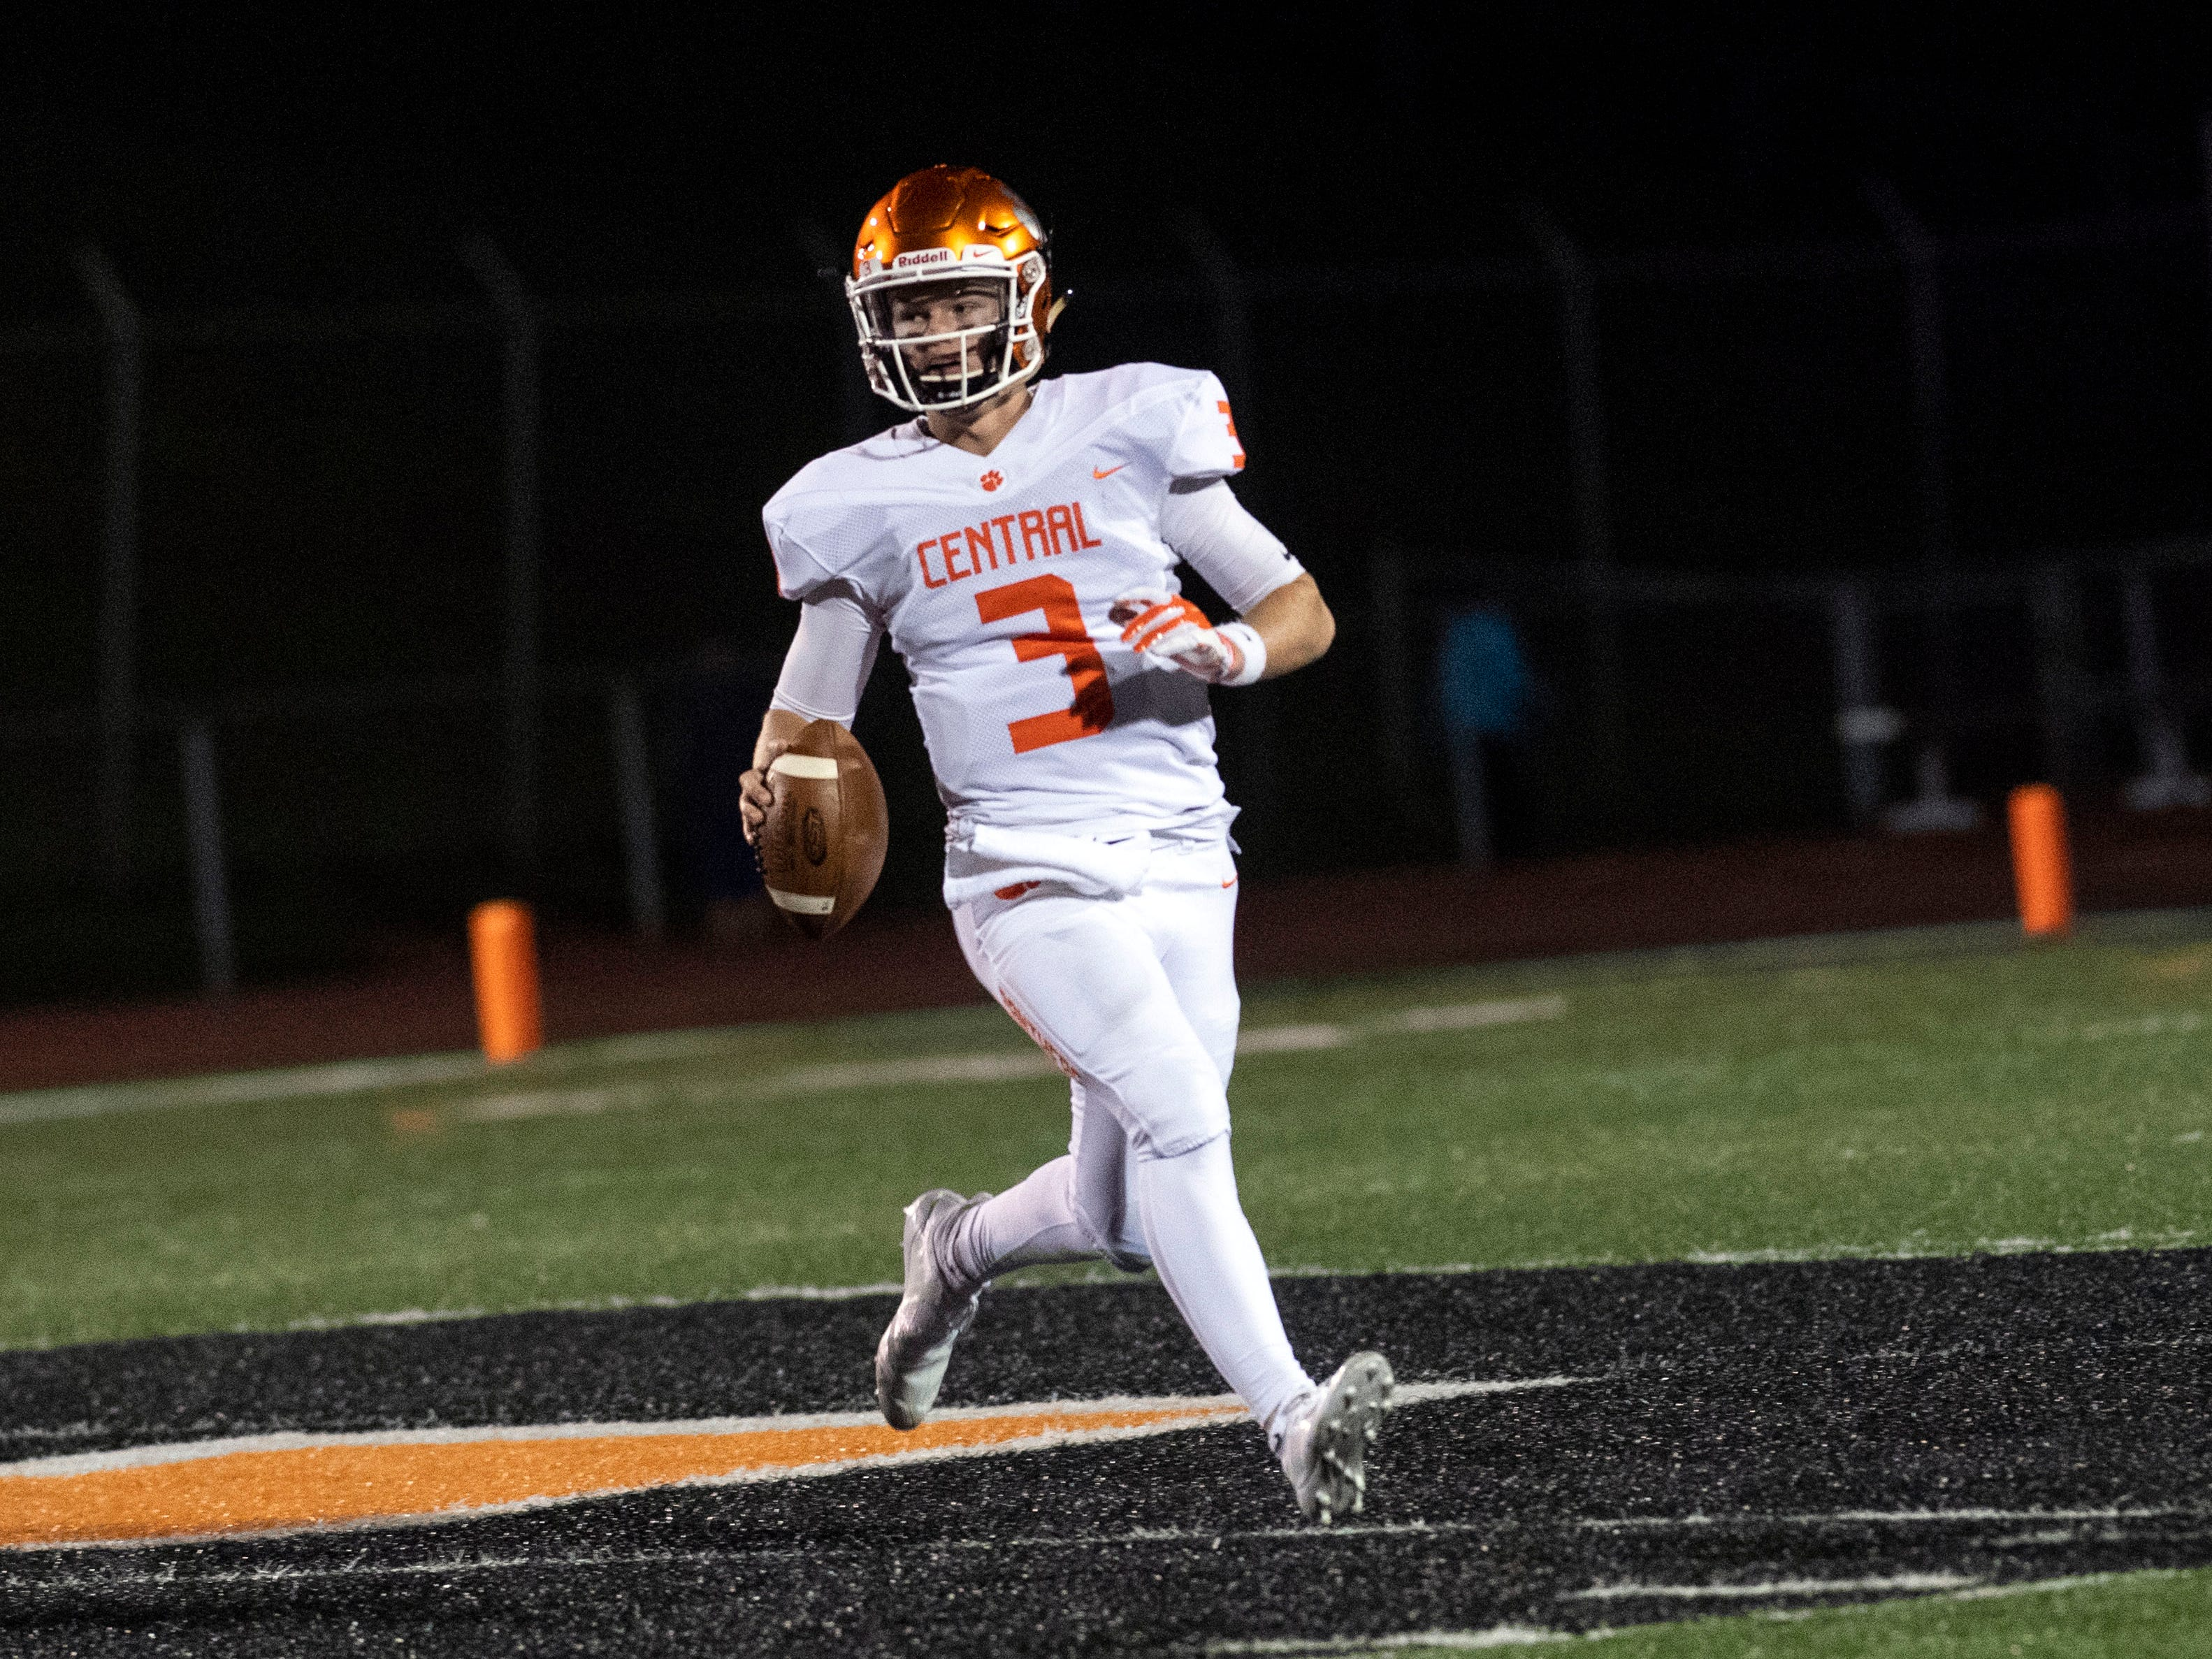 Central York quarterback Cade Pribula (3) runs toward the sidelines while eyeing up a receiver during a YAIAA Division I football game at Northeastern High School on Friday, Oct. 12, 2018. The Central York Panthers beat the Northeastern Bobcats, 44-7.